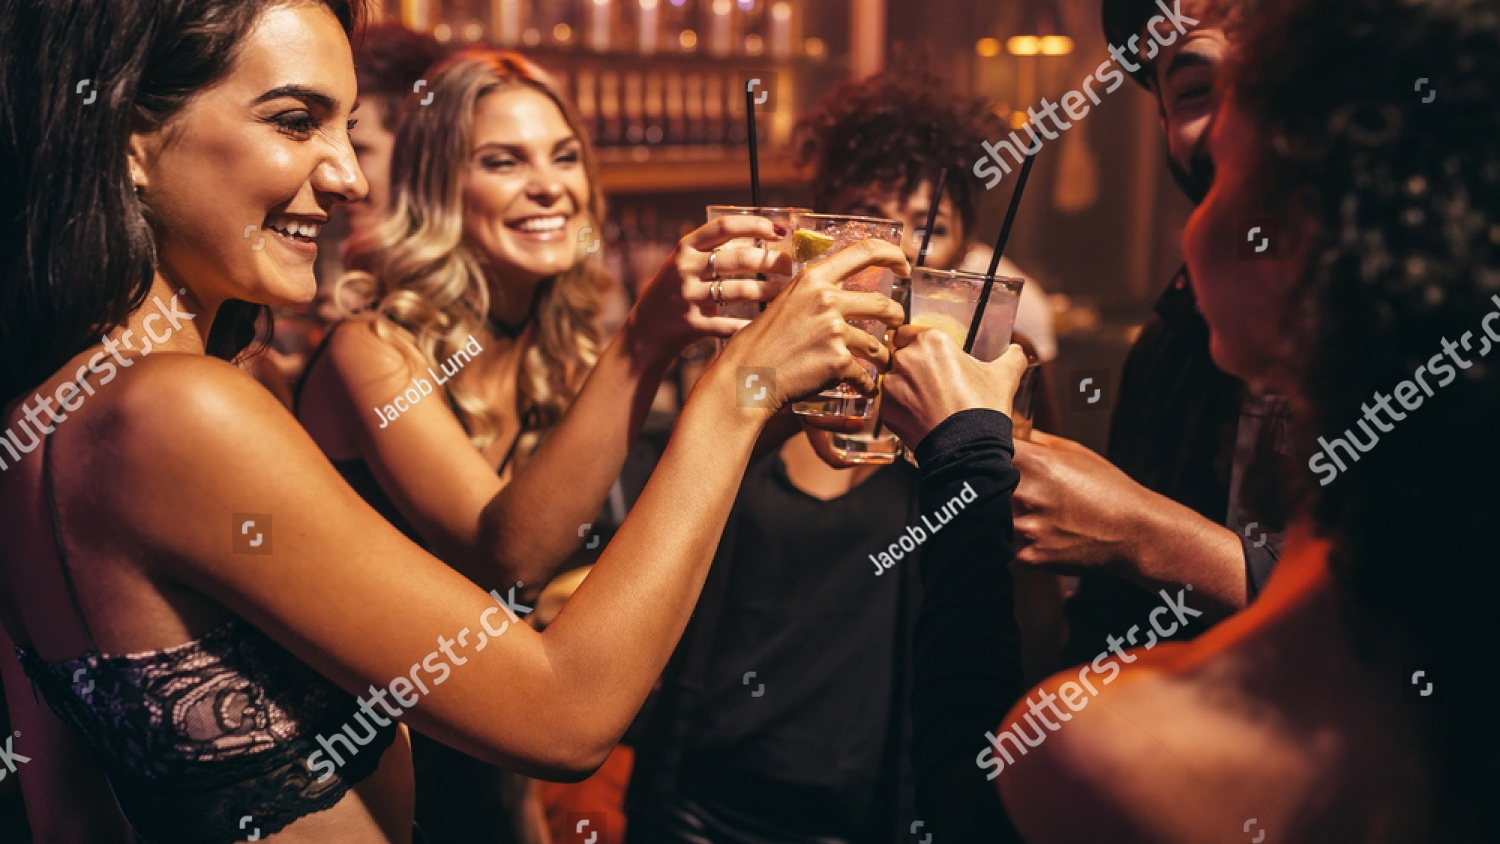 stock-photo-group-of-young-people-with-cocktails-at-nightclub-best-friends-partying-in-a-pub-and-toasting-574600165.jpg